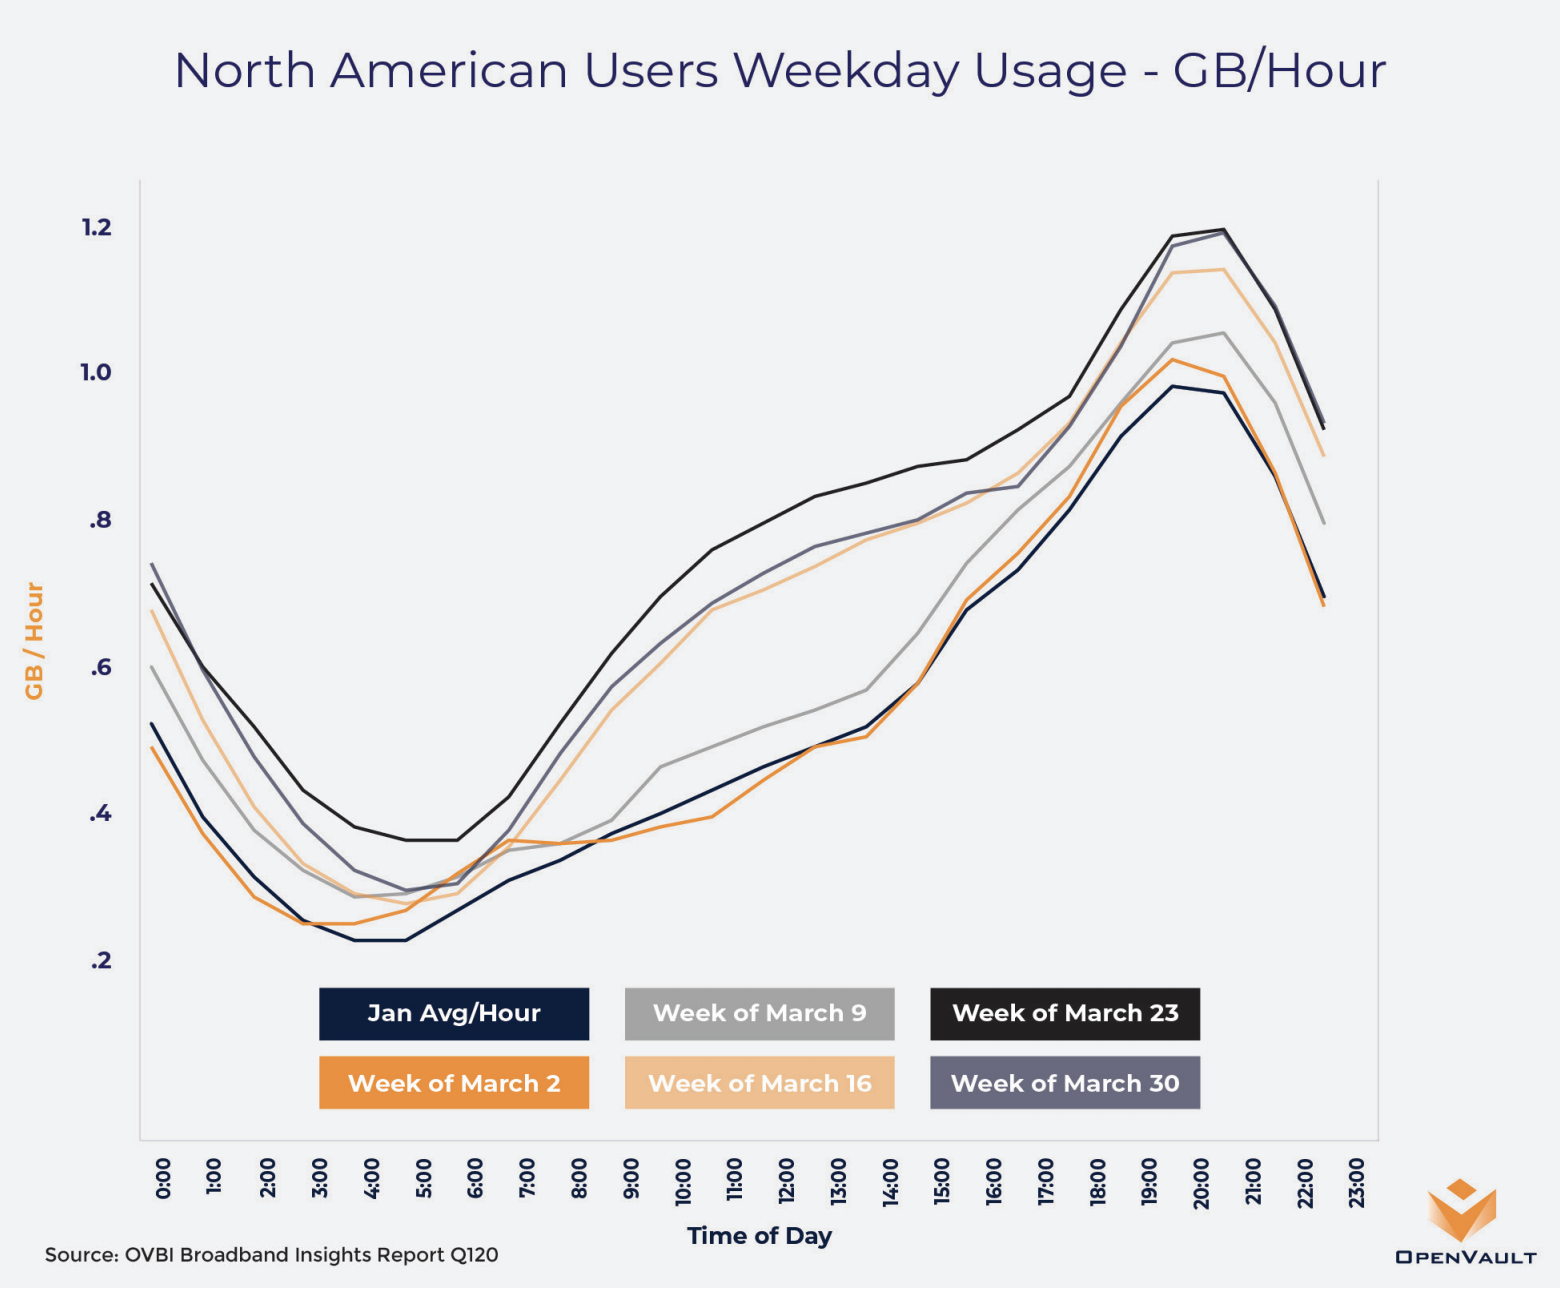 North American Users Weekday Usage according to OpenVault. Use these stats to optimize your data tariffs